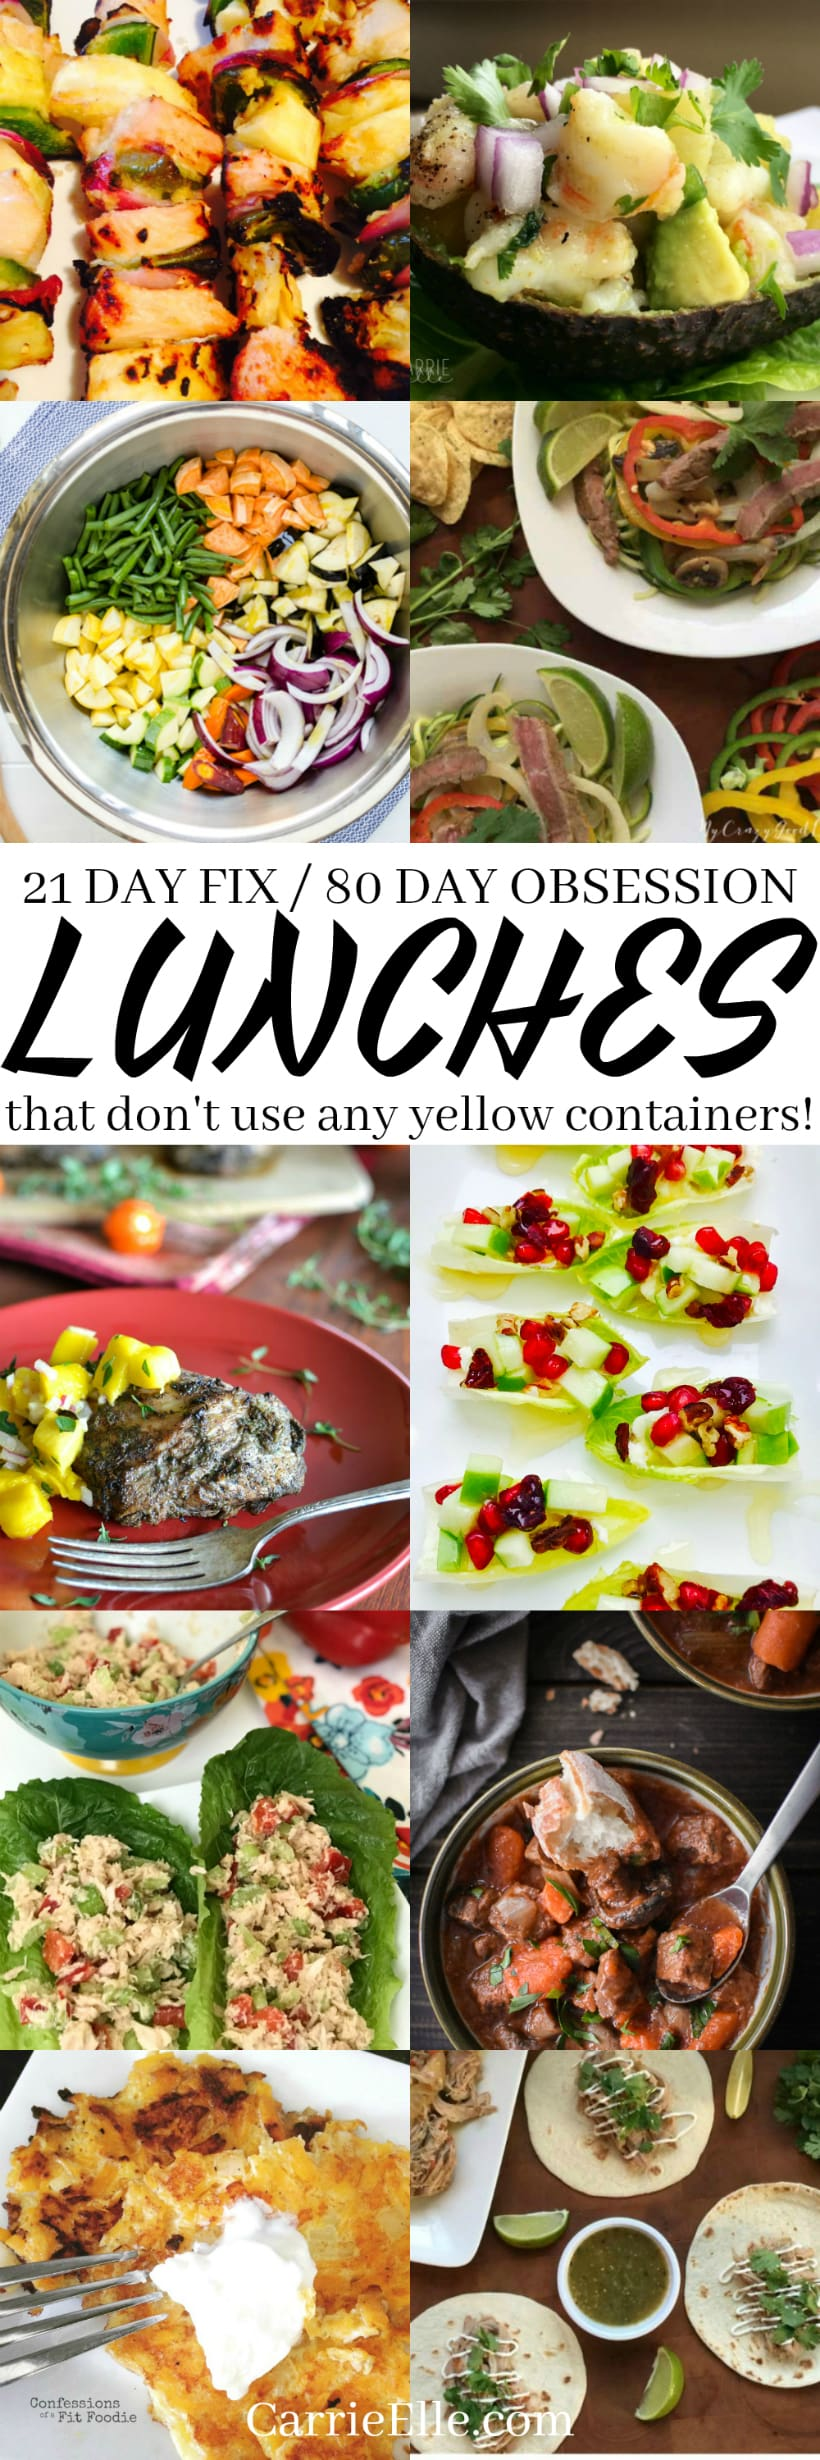 21 Day Fix No Yellows Lunches